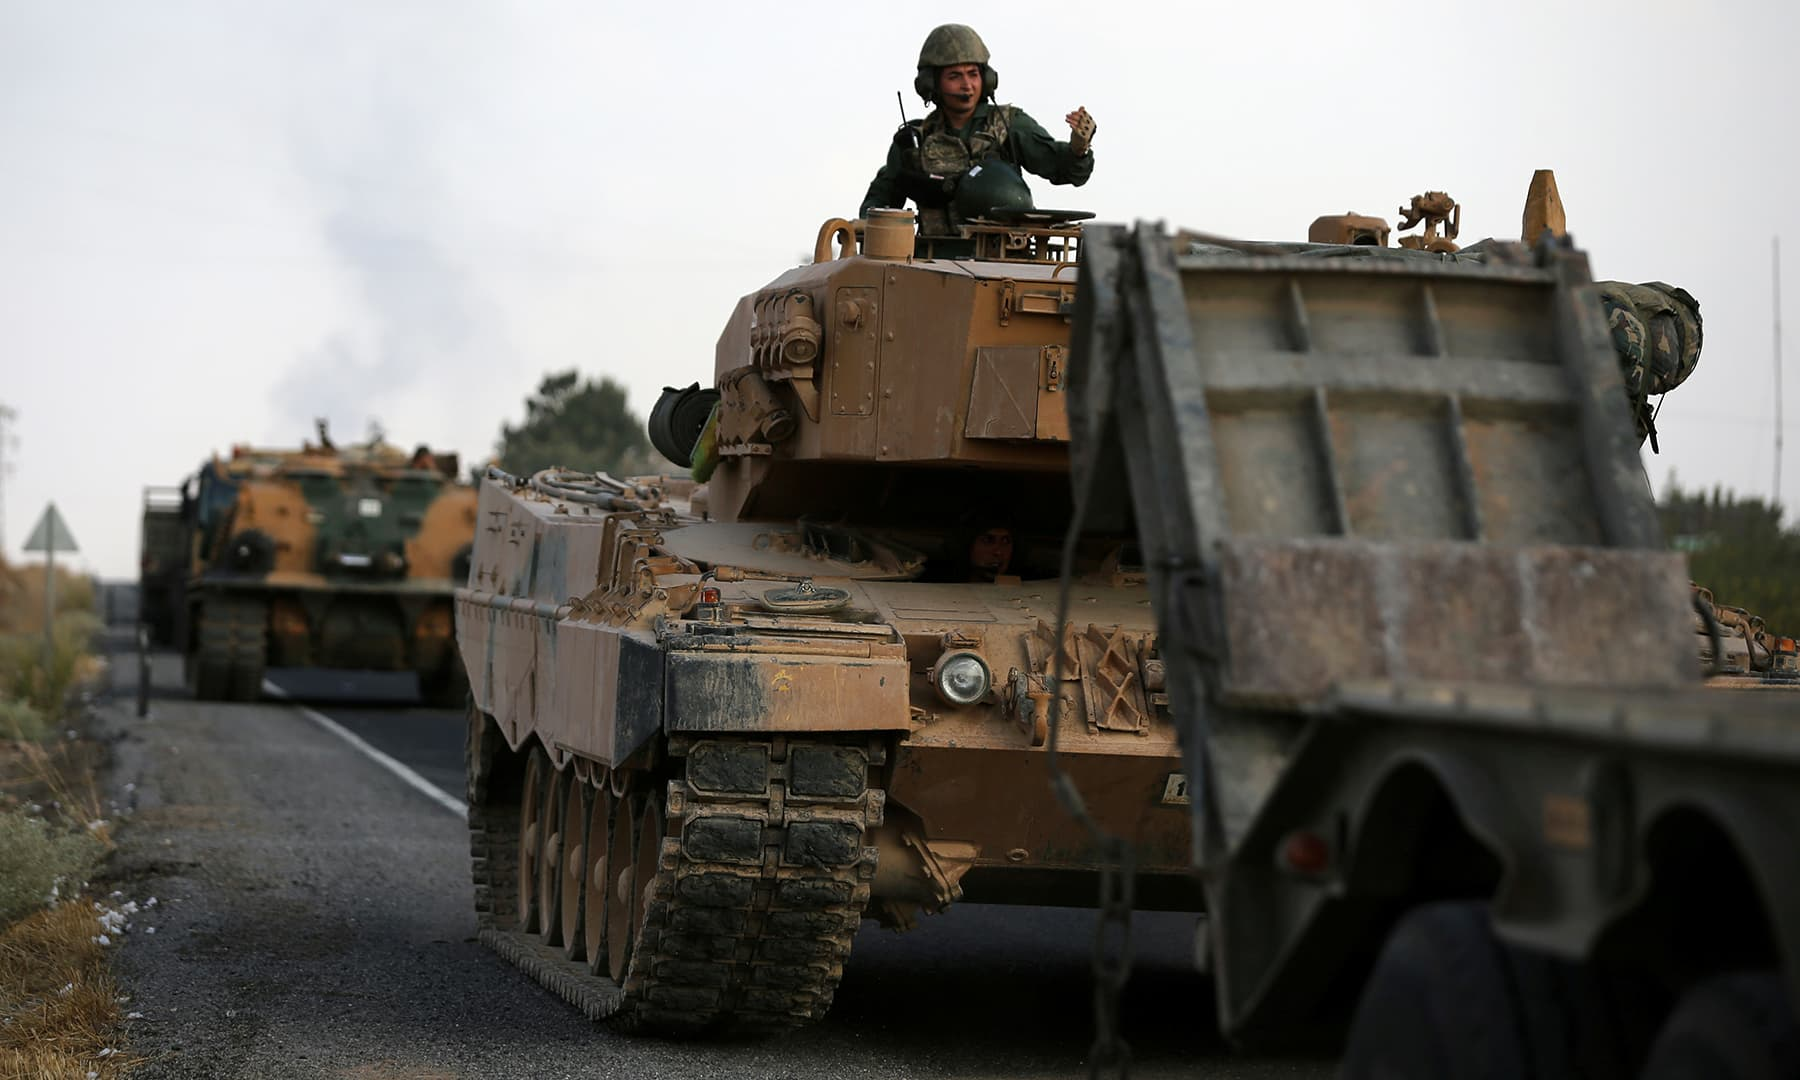 Turkish army vehicles are moving on a road near the Turkish border town of Ceylanpinar, Sanliurfa province, Turkey, October 18. — Reuters